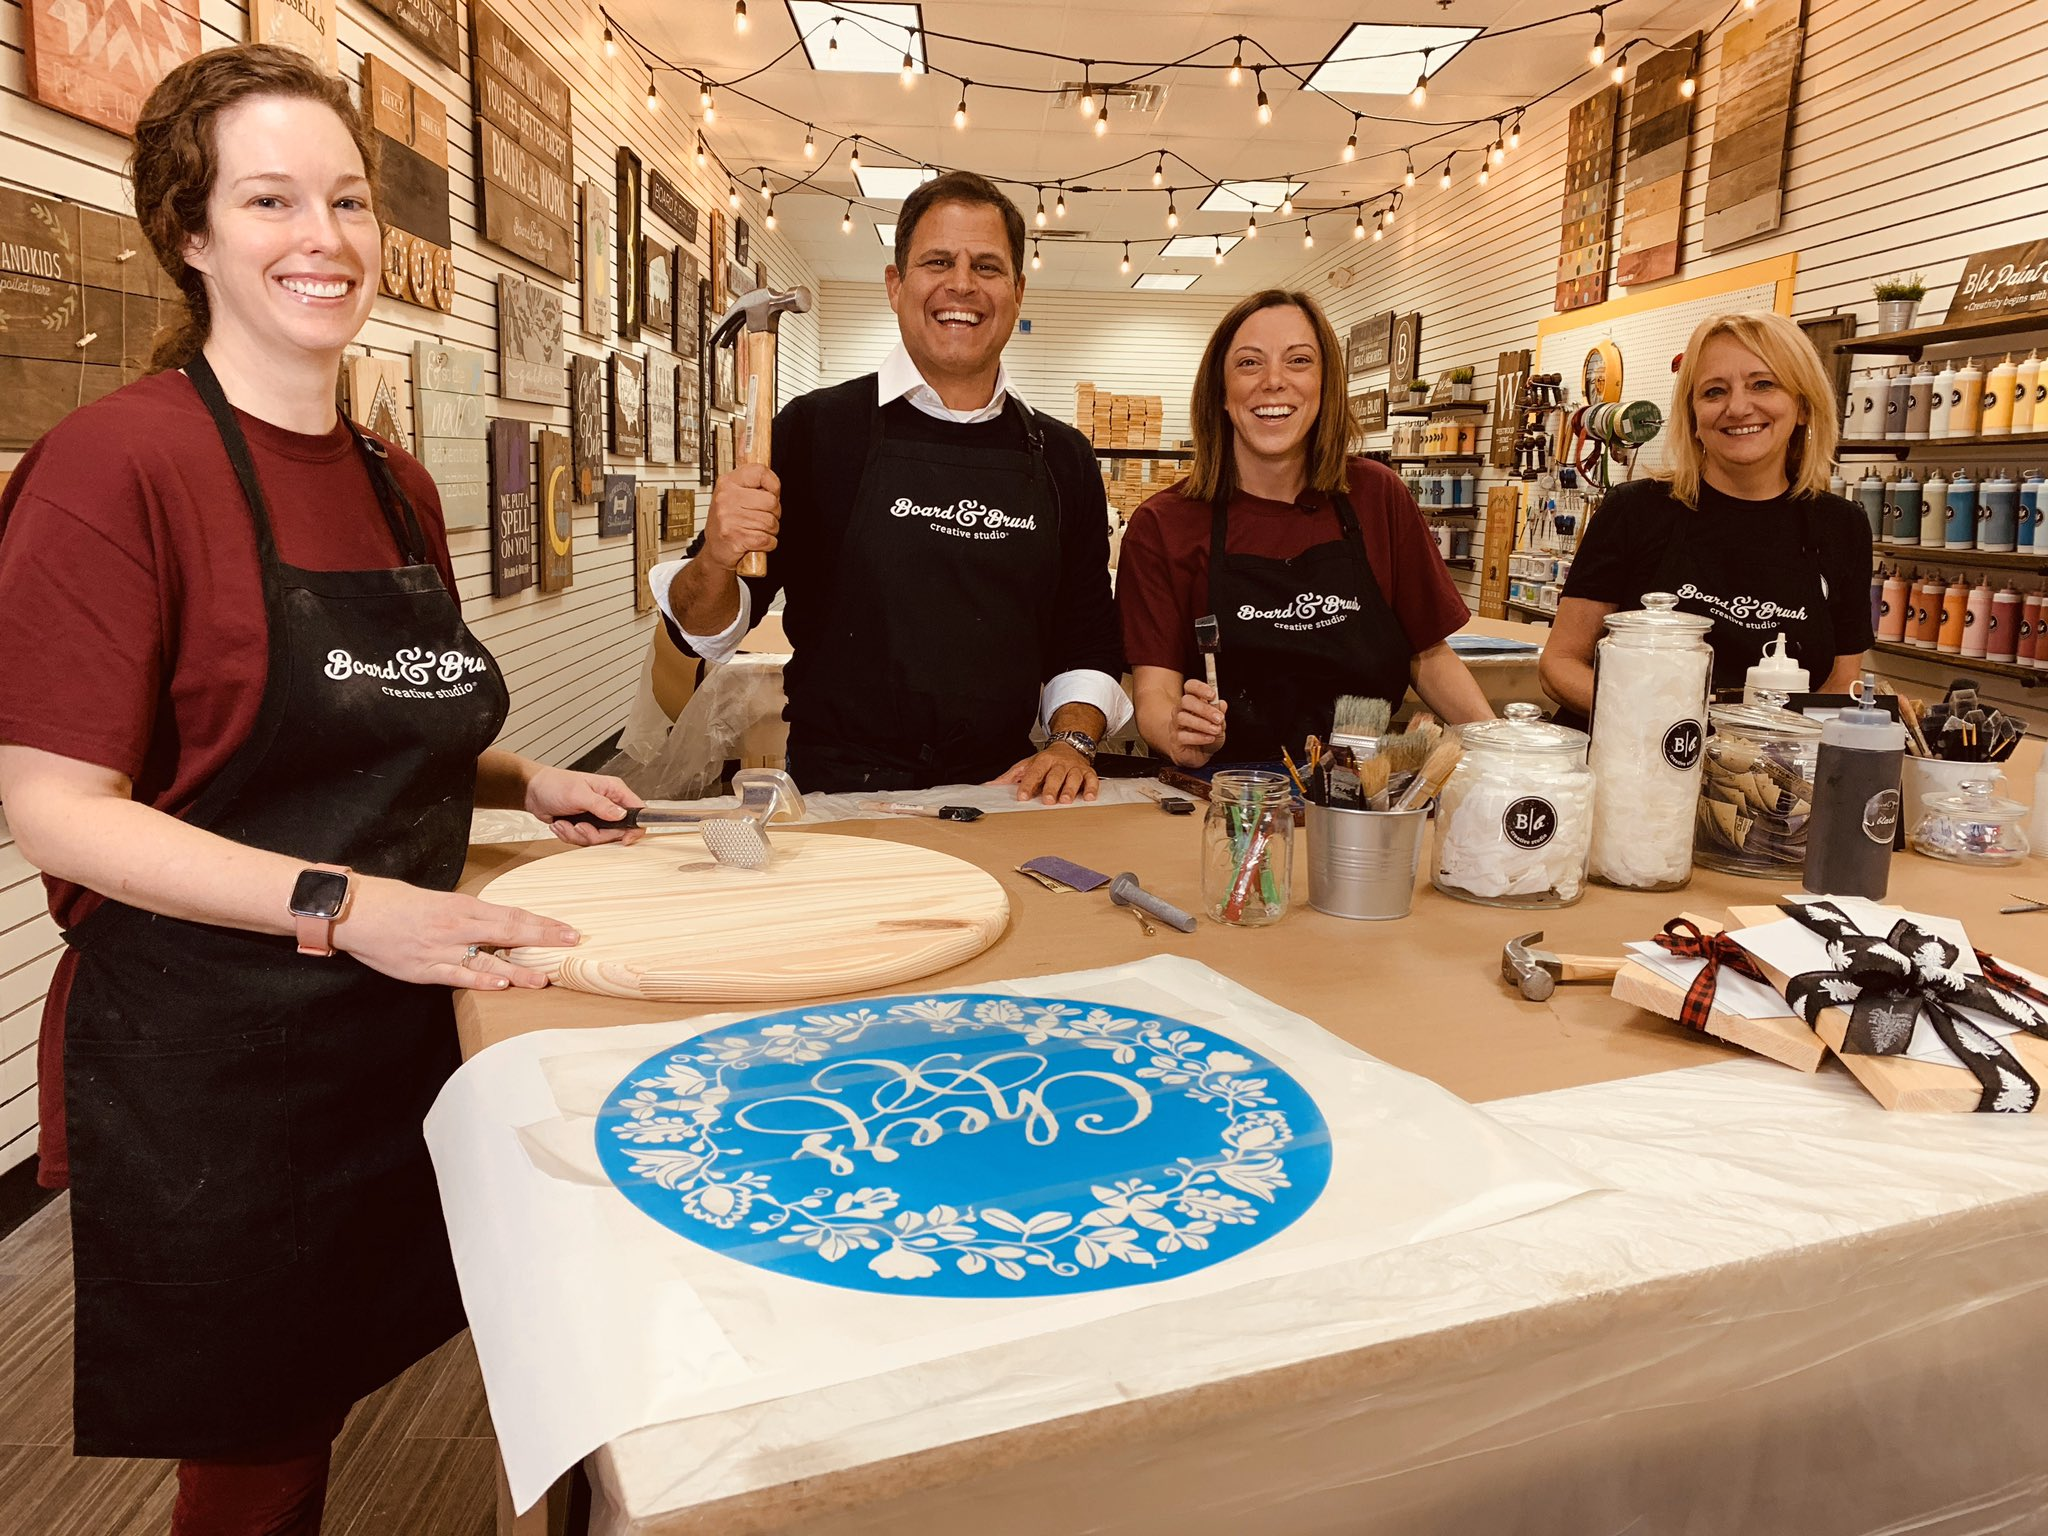 New studio in Skaneateles offers unique DIY workshops